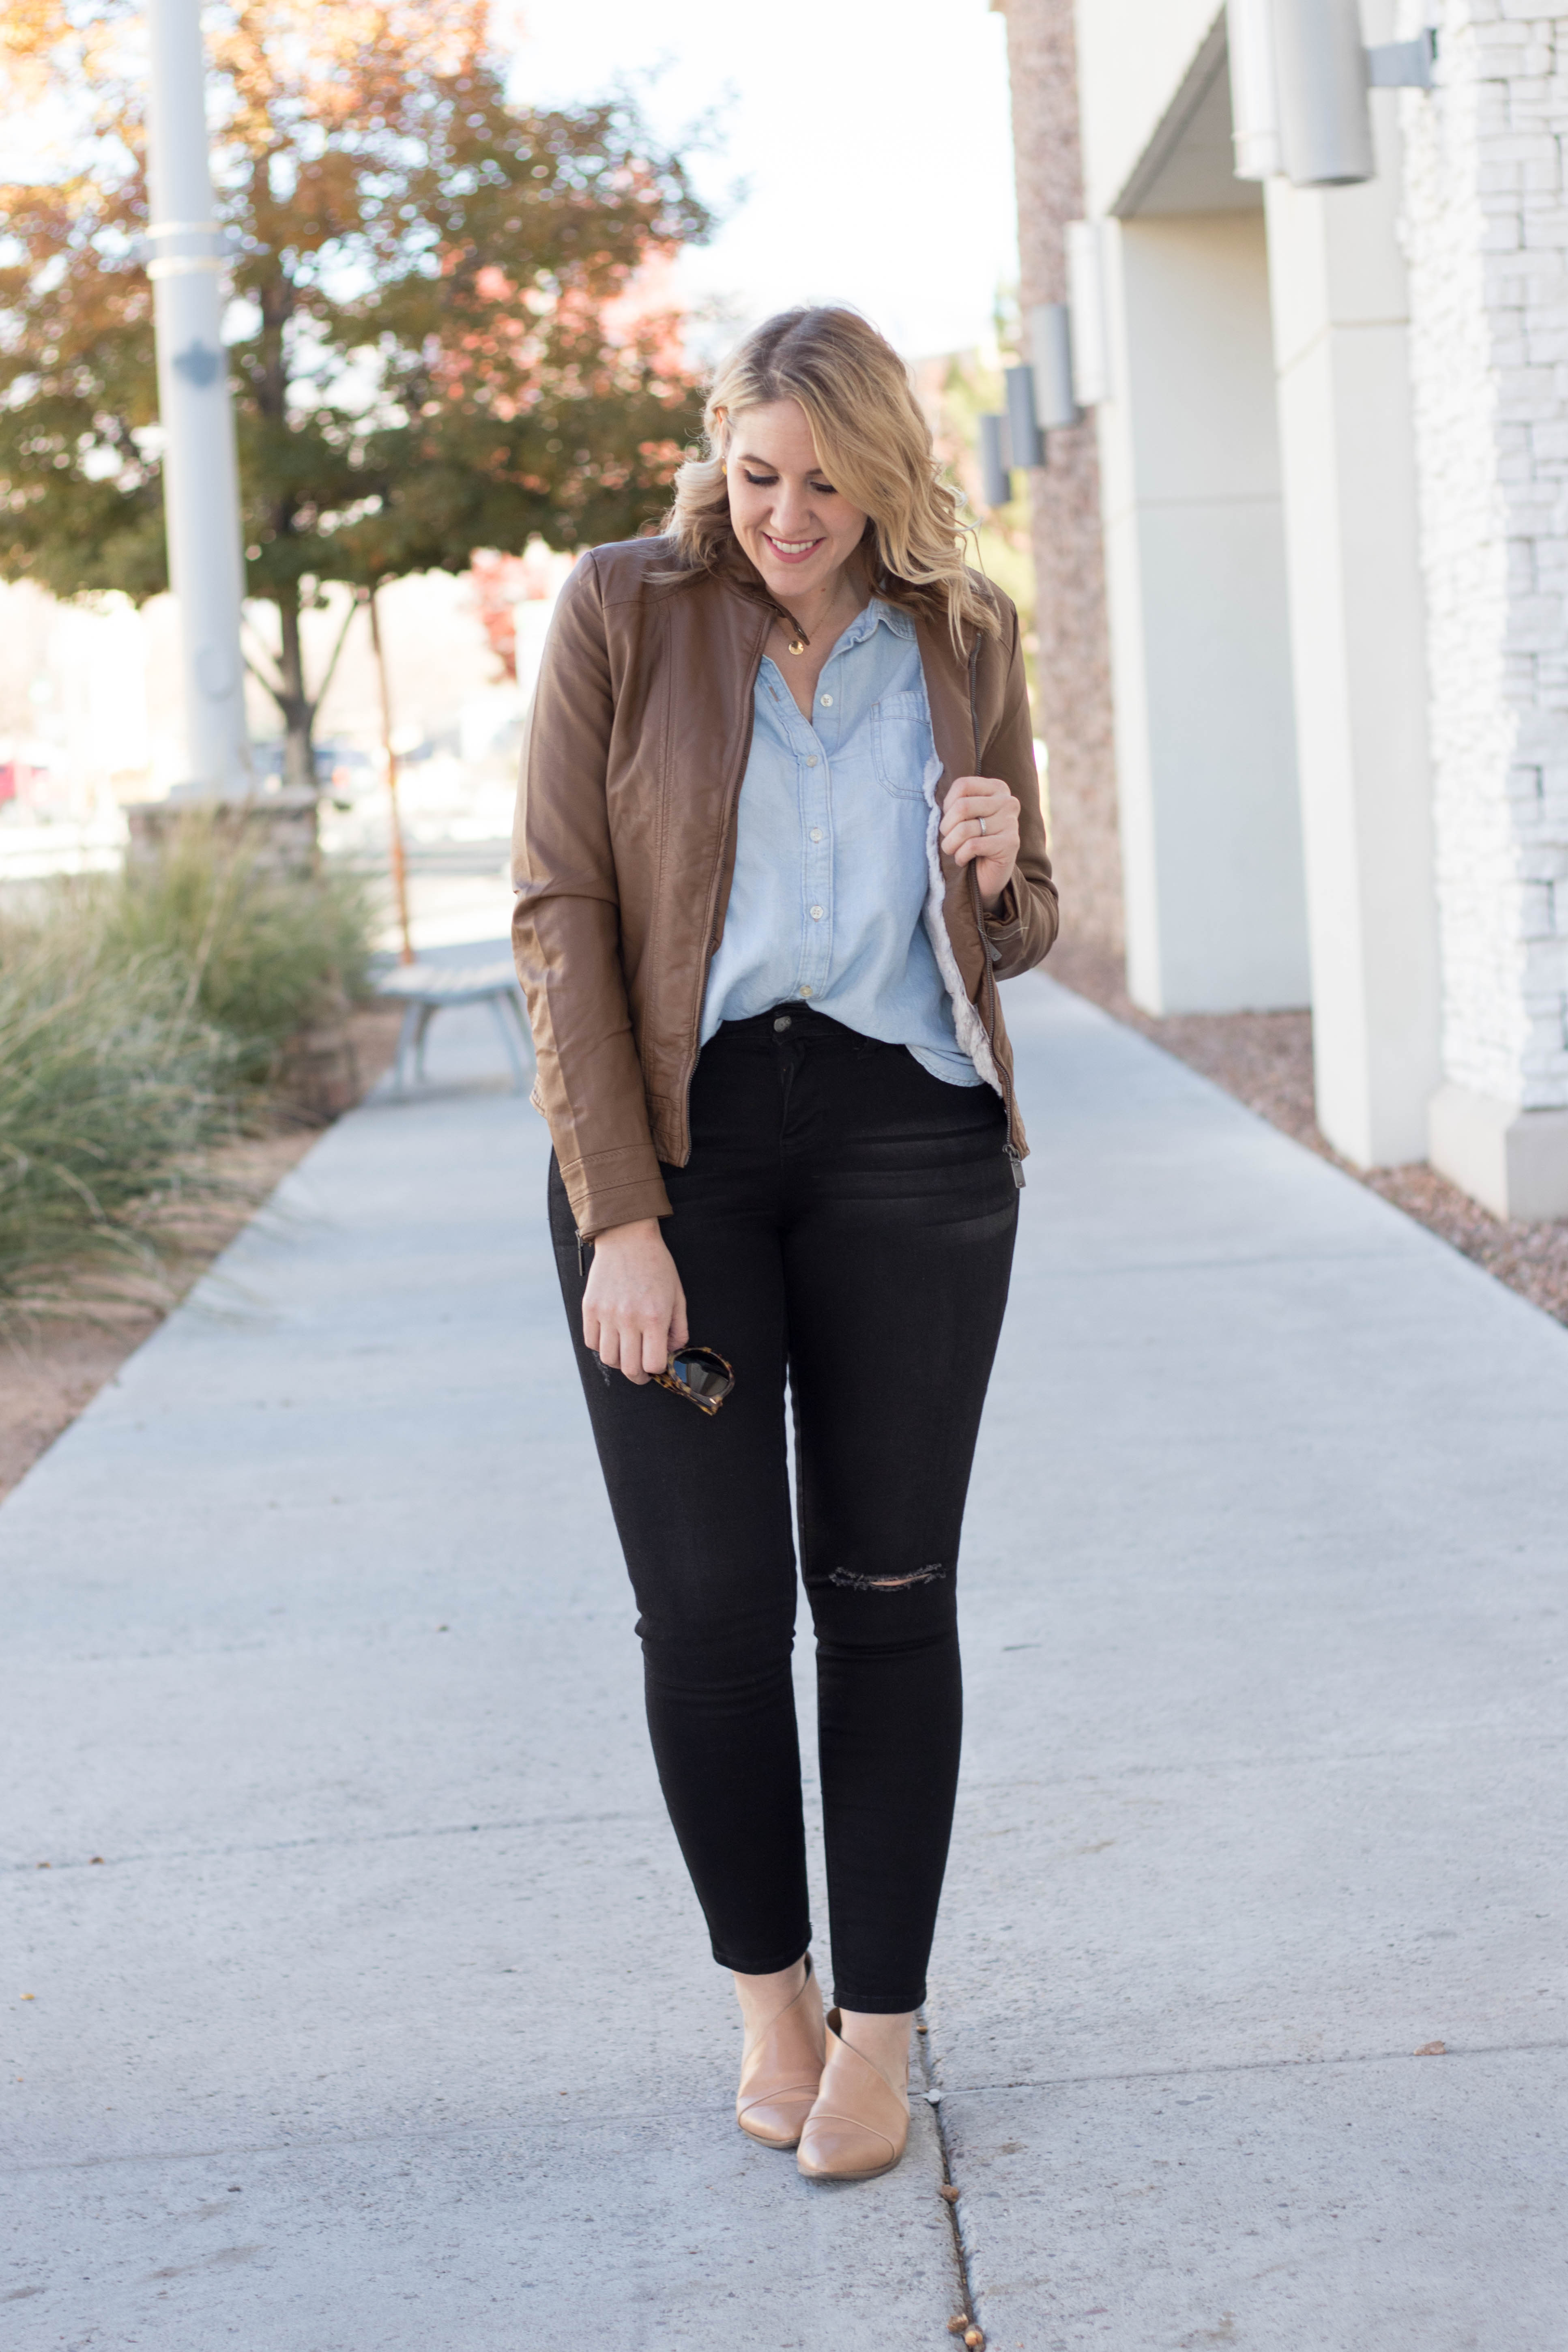 royalty for me jeans #jeans #fallstyle #fallfashion